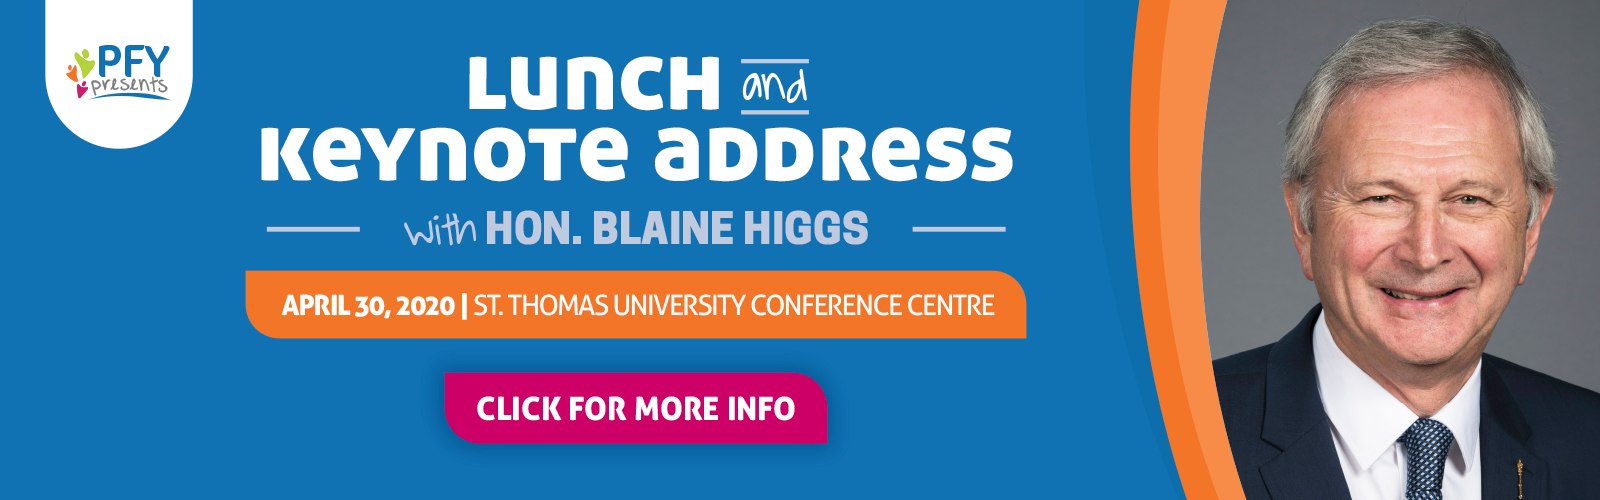 Lunch and Keynote Address with Hon. Blaine Higgs